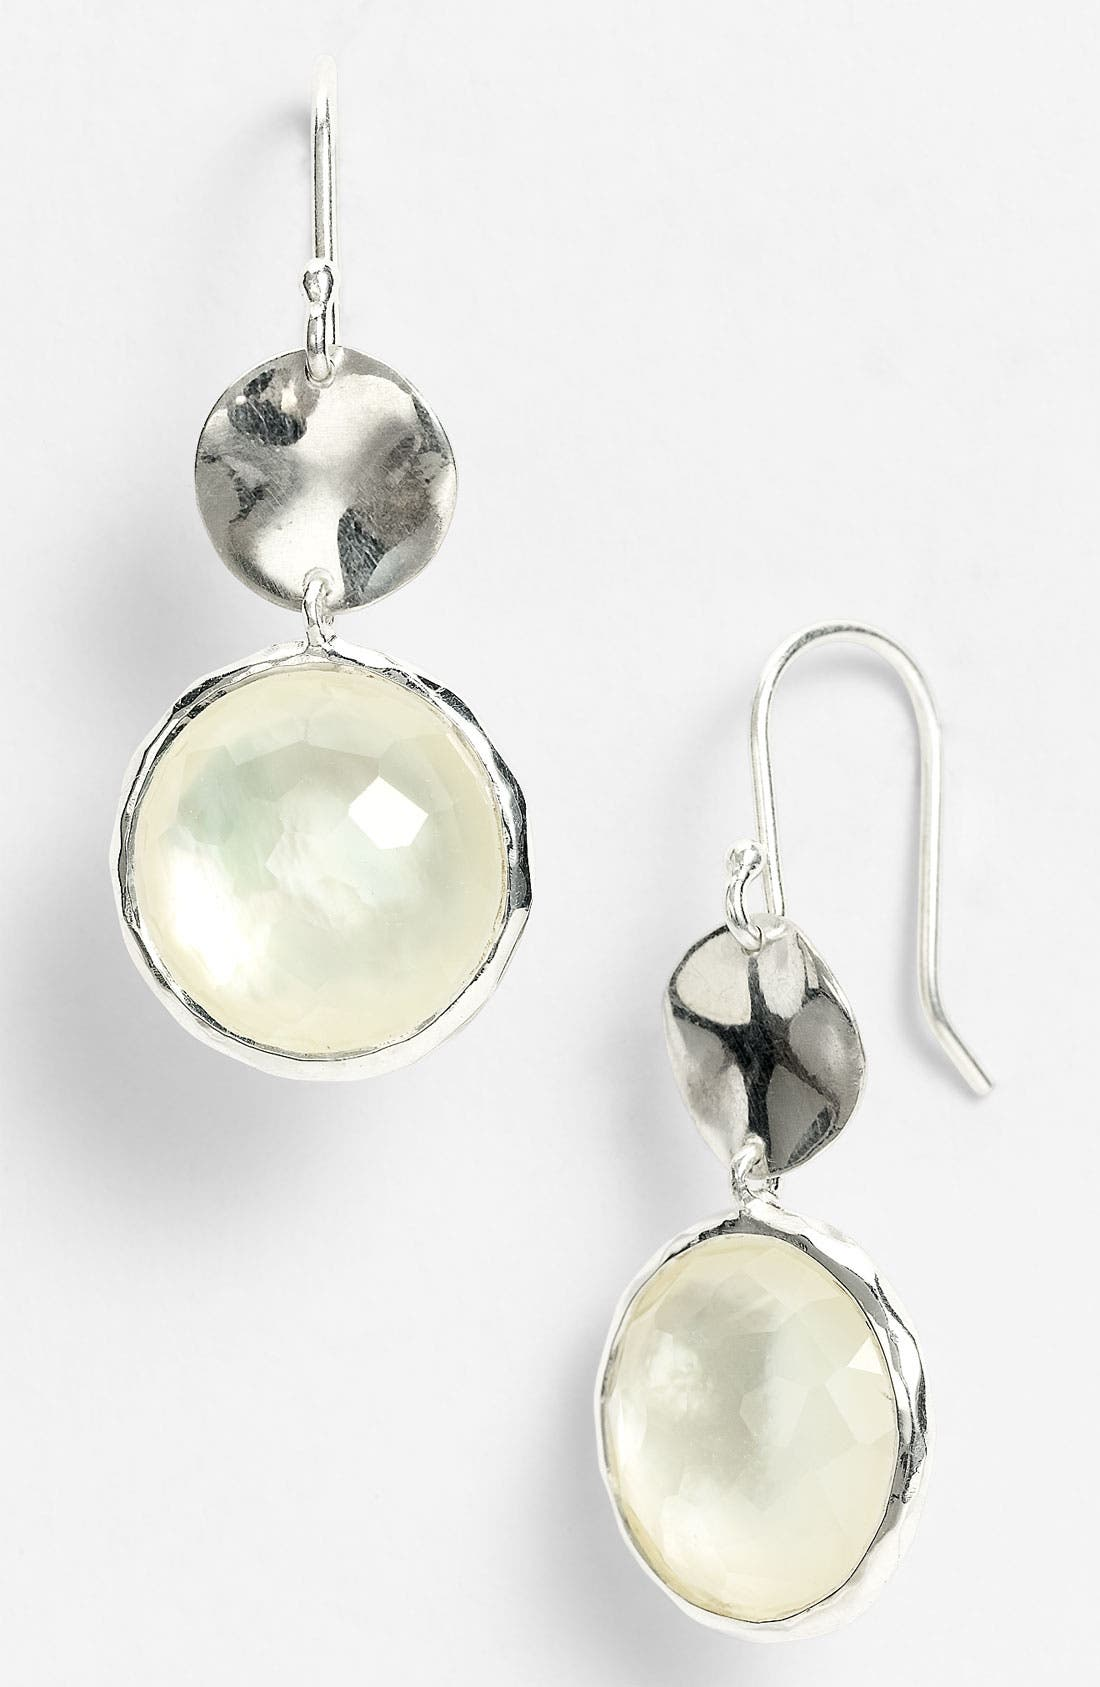 Alternate Image 1 Selected - Ippolita 'Rock Candy - Mini Snowman' Earrings (Nordstrom Exclusive)